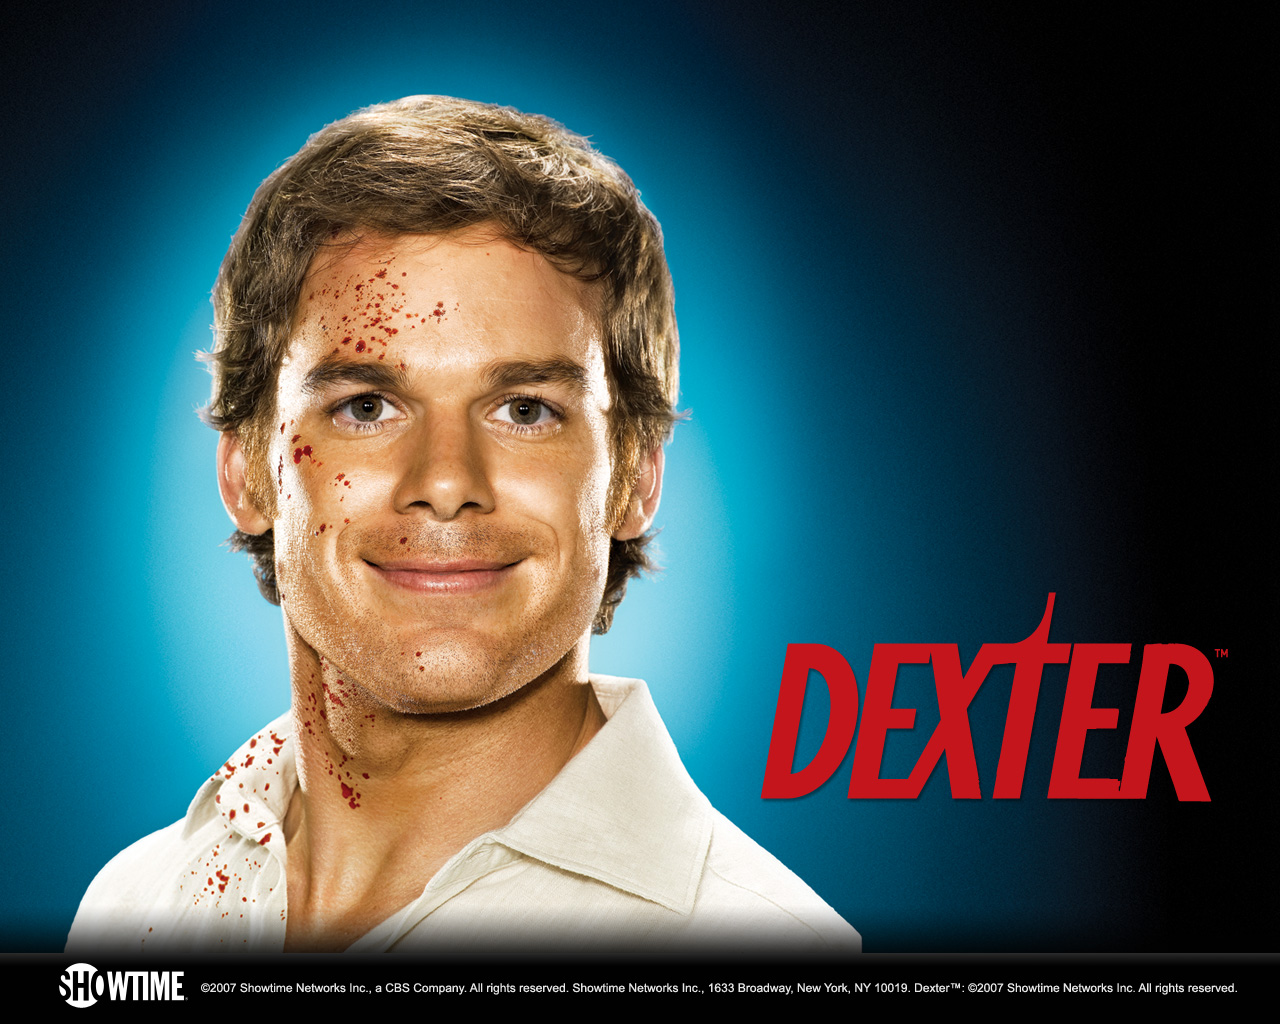 Dexter Logo And Titles Fonts In Use